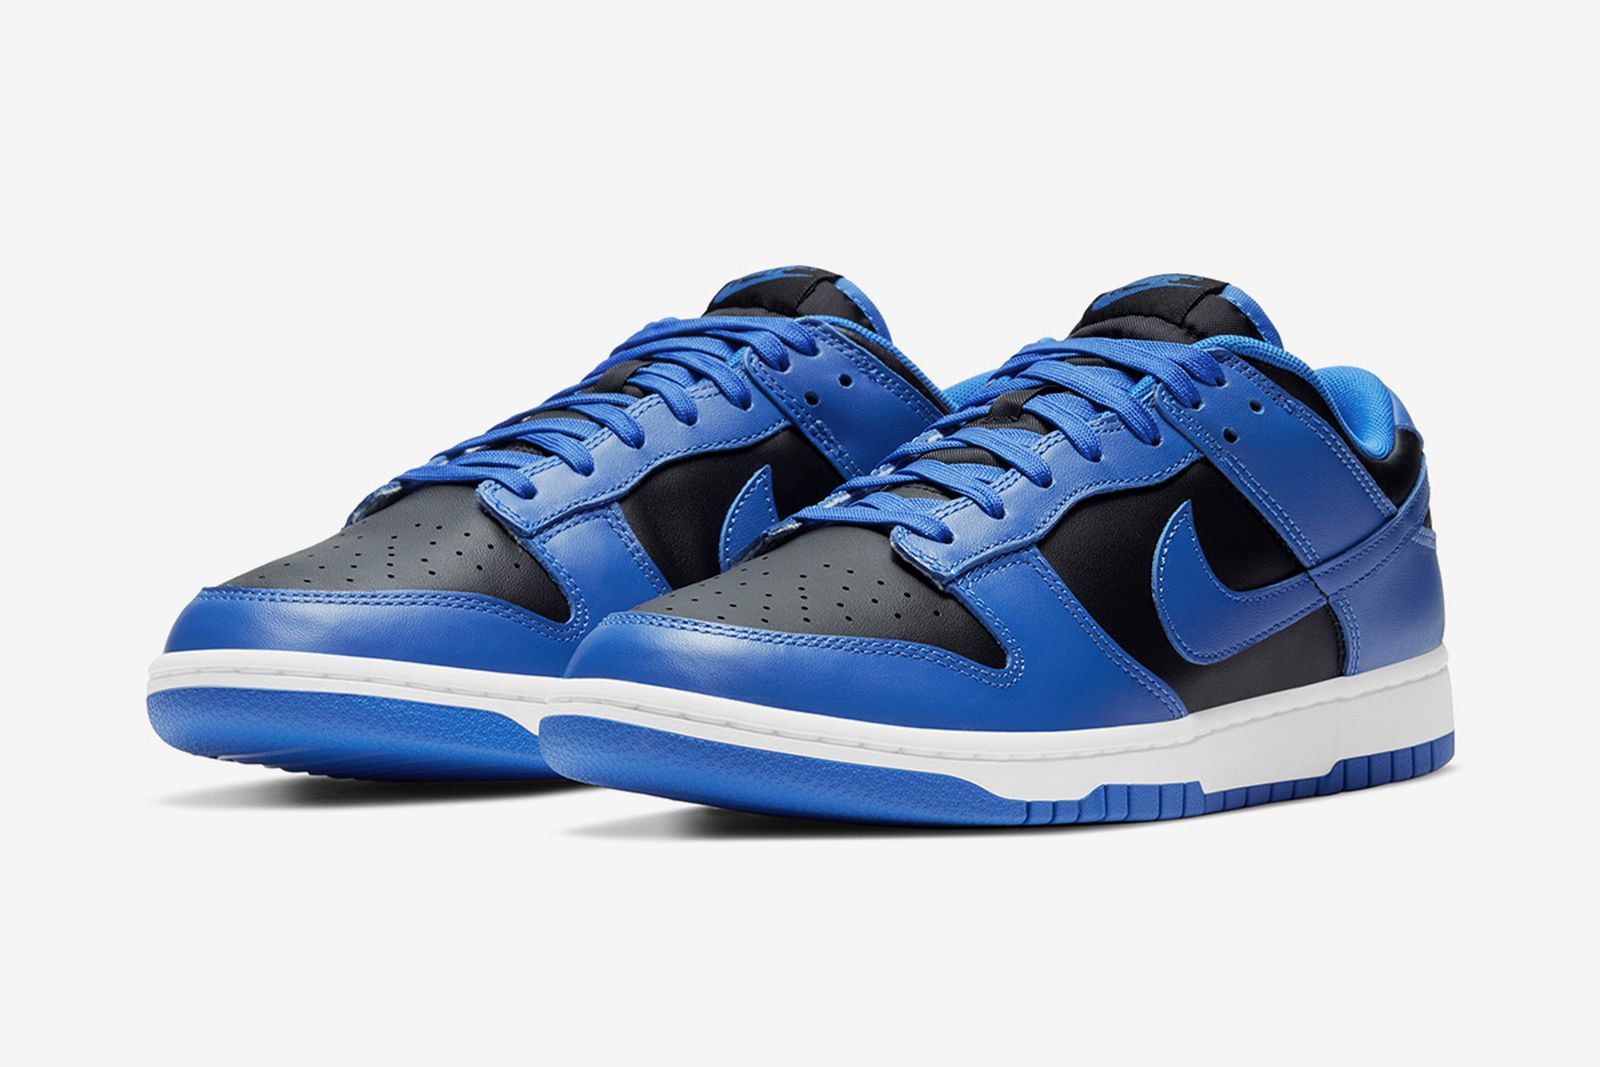 nike-dunk-spring-2021-release-date-price-1-17